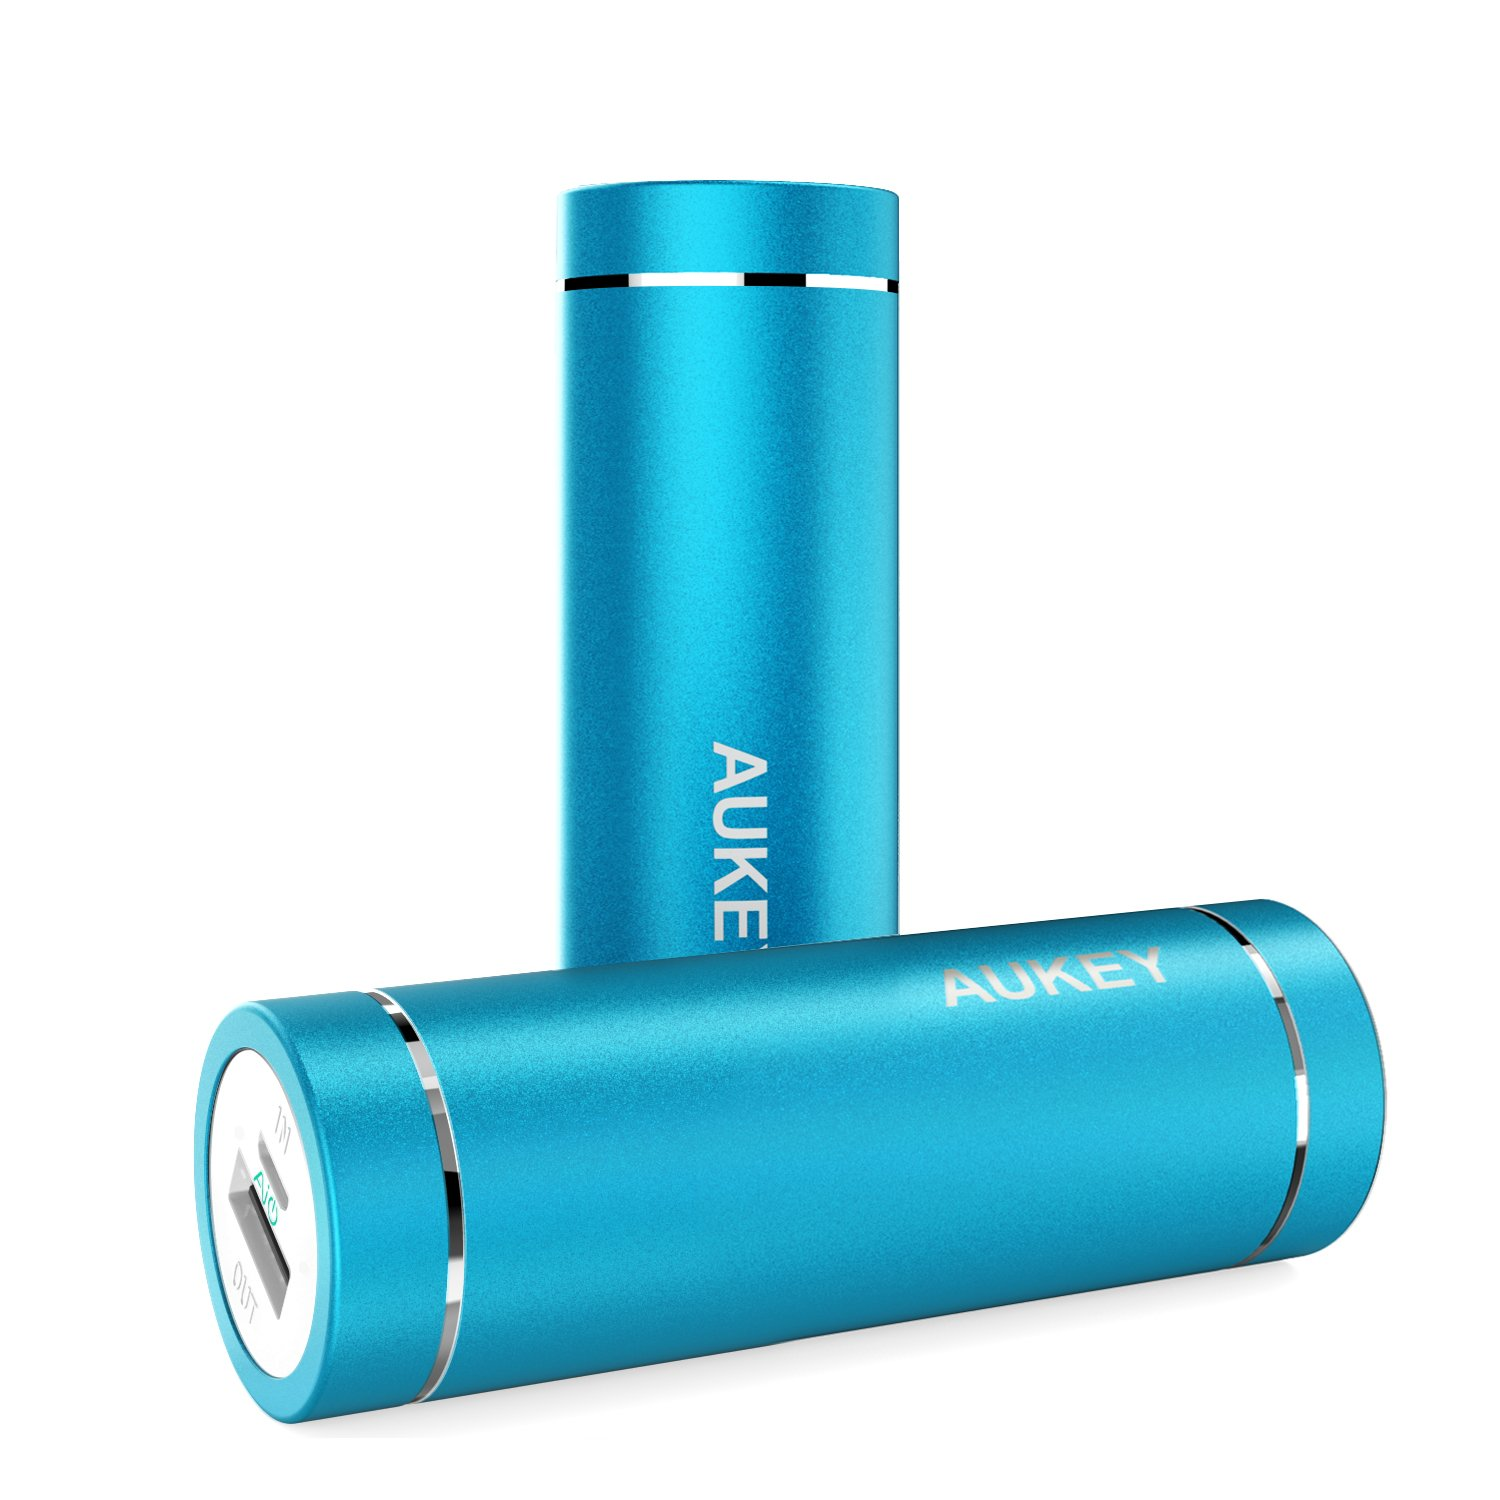 AUKEY 5000mAh Portable Charger Compact Size Power Bank with 5V//2A Output External Battery for iPhone iPad Samsung Google and More Blue